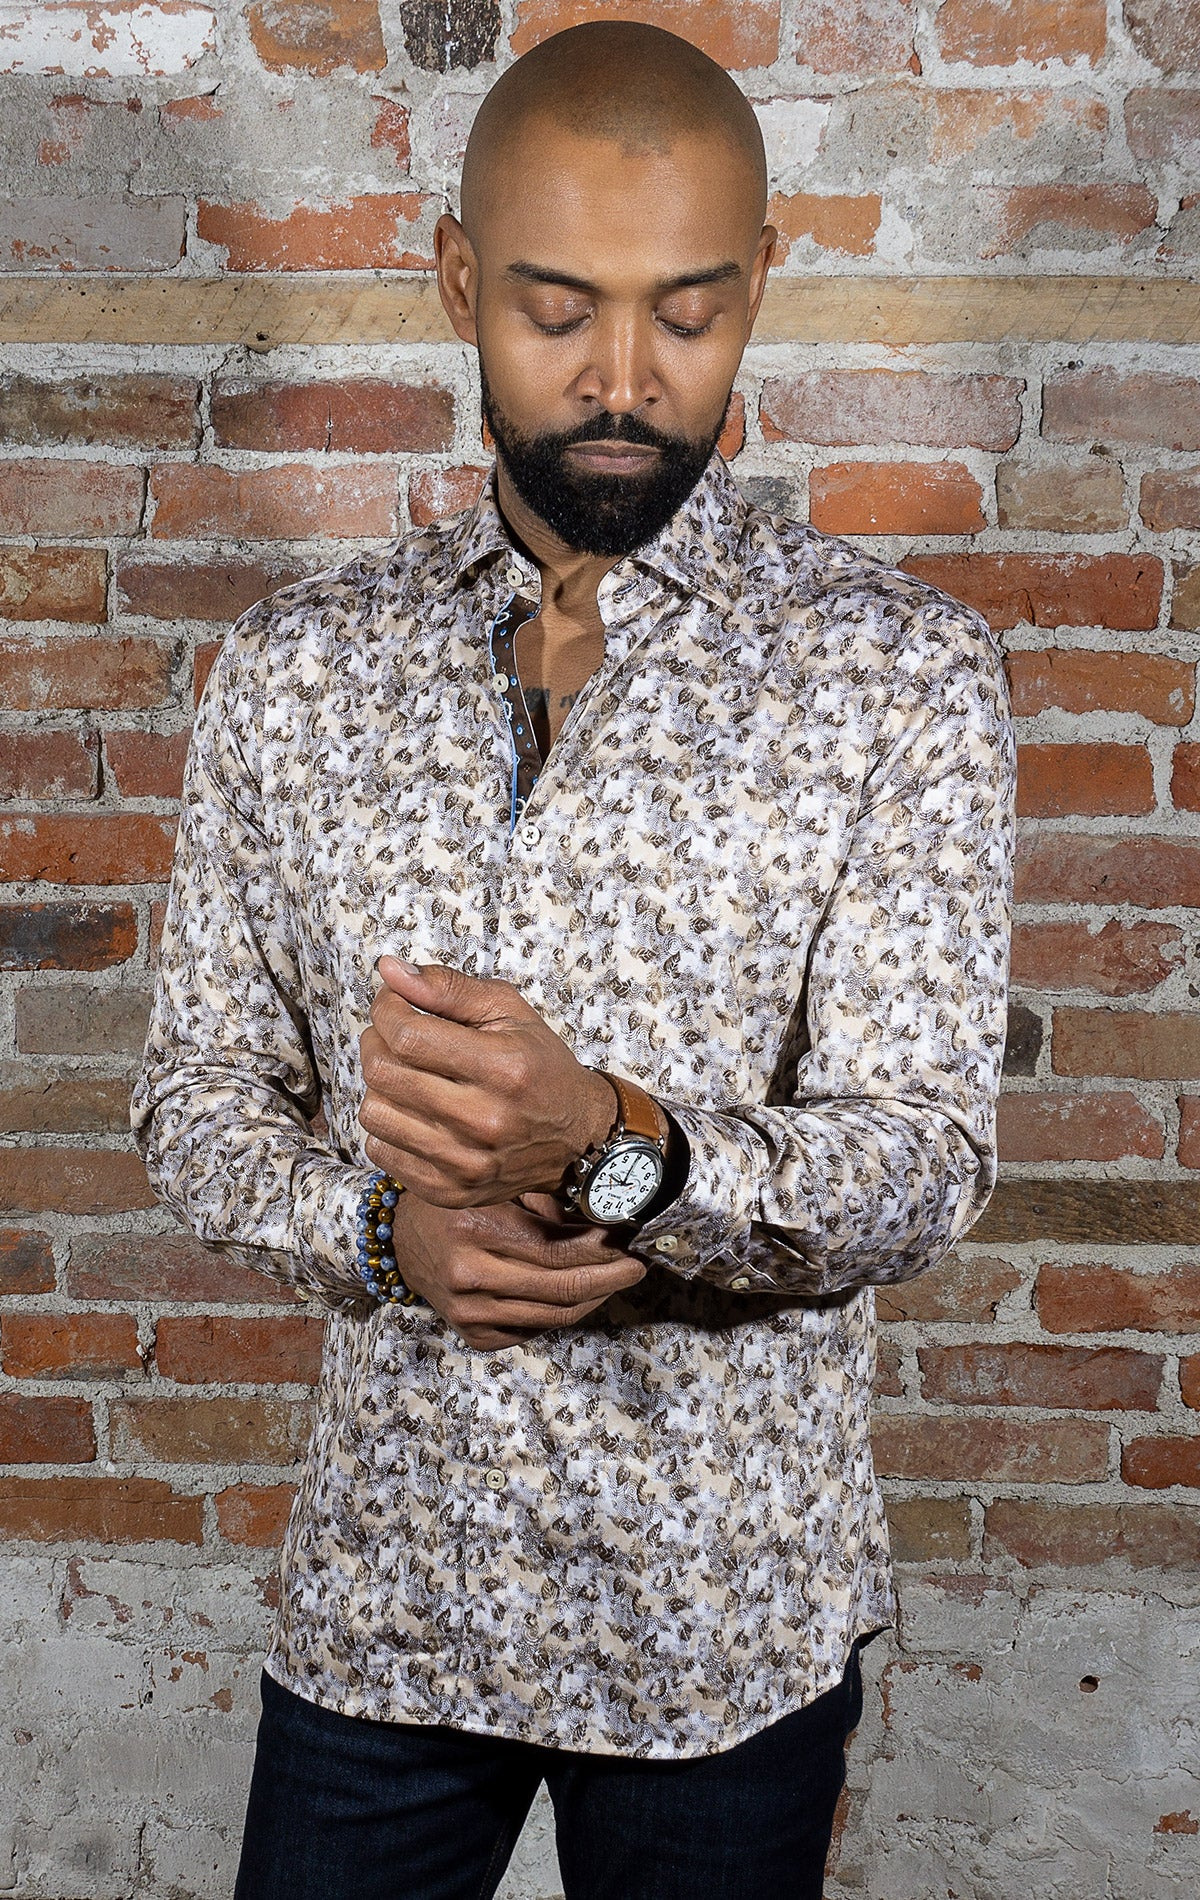 tan and brown long sleeve sport shirt. Leaf pattern